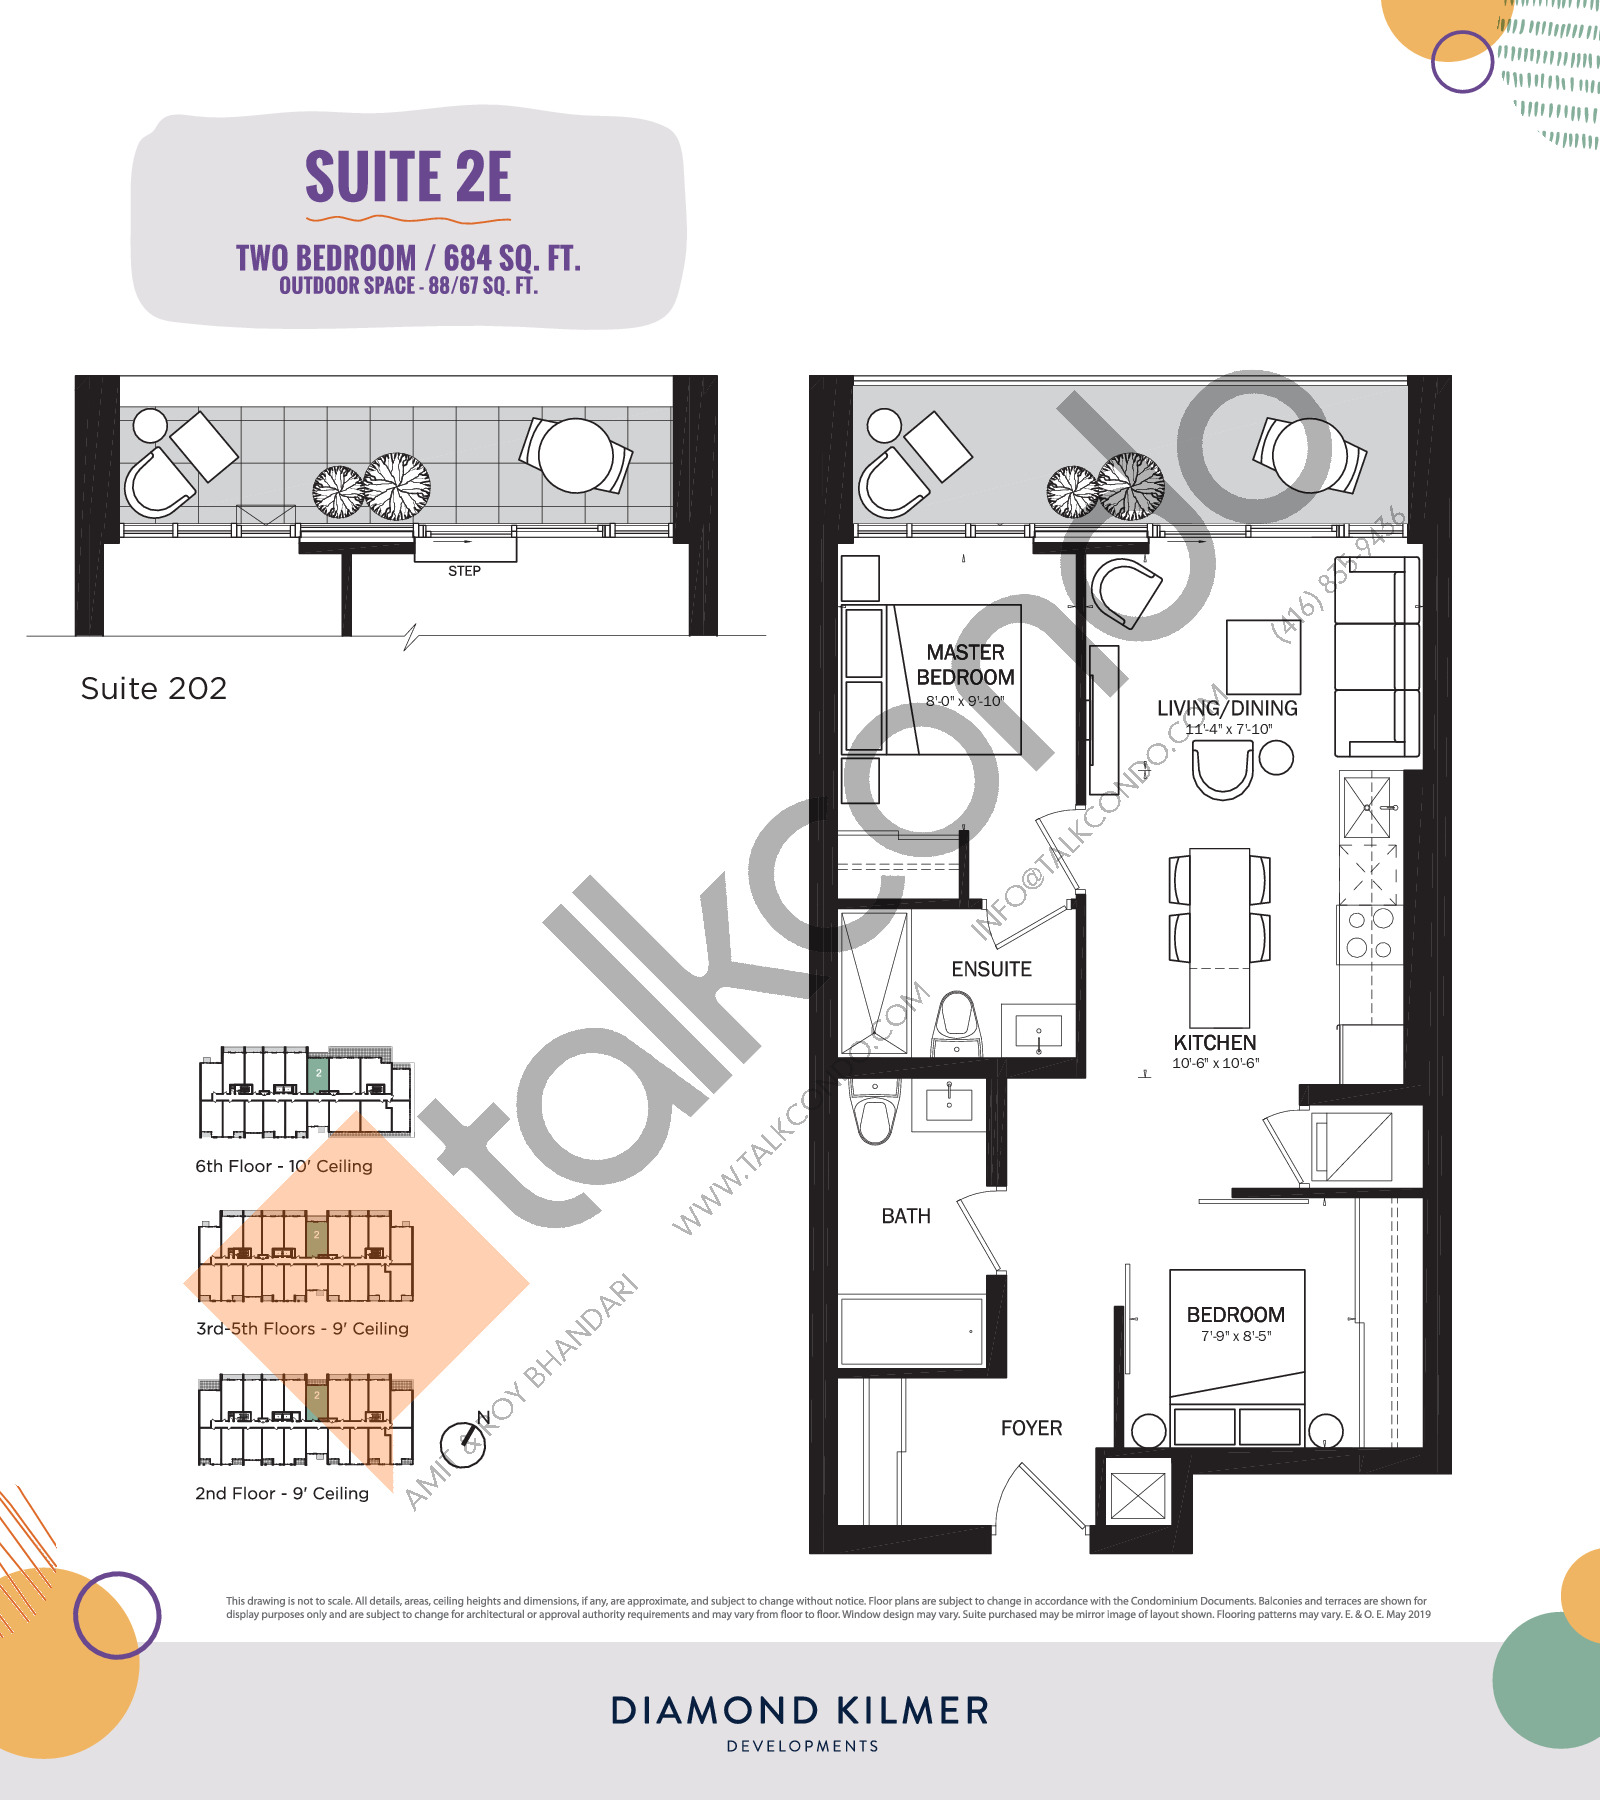 2E Floor Plan at Reunion Crossing Condos & Urban Towns - 684 sq.ft